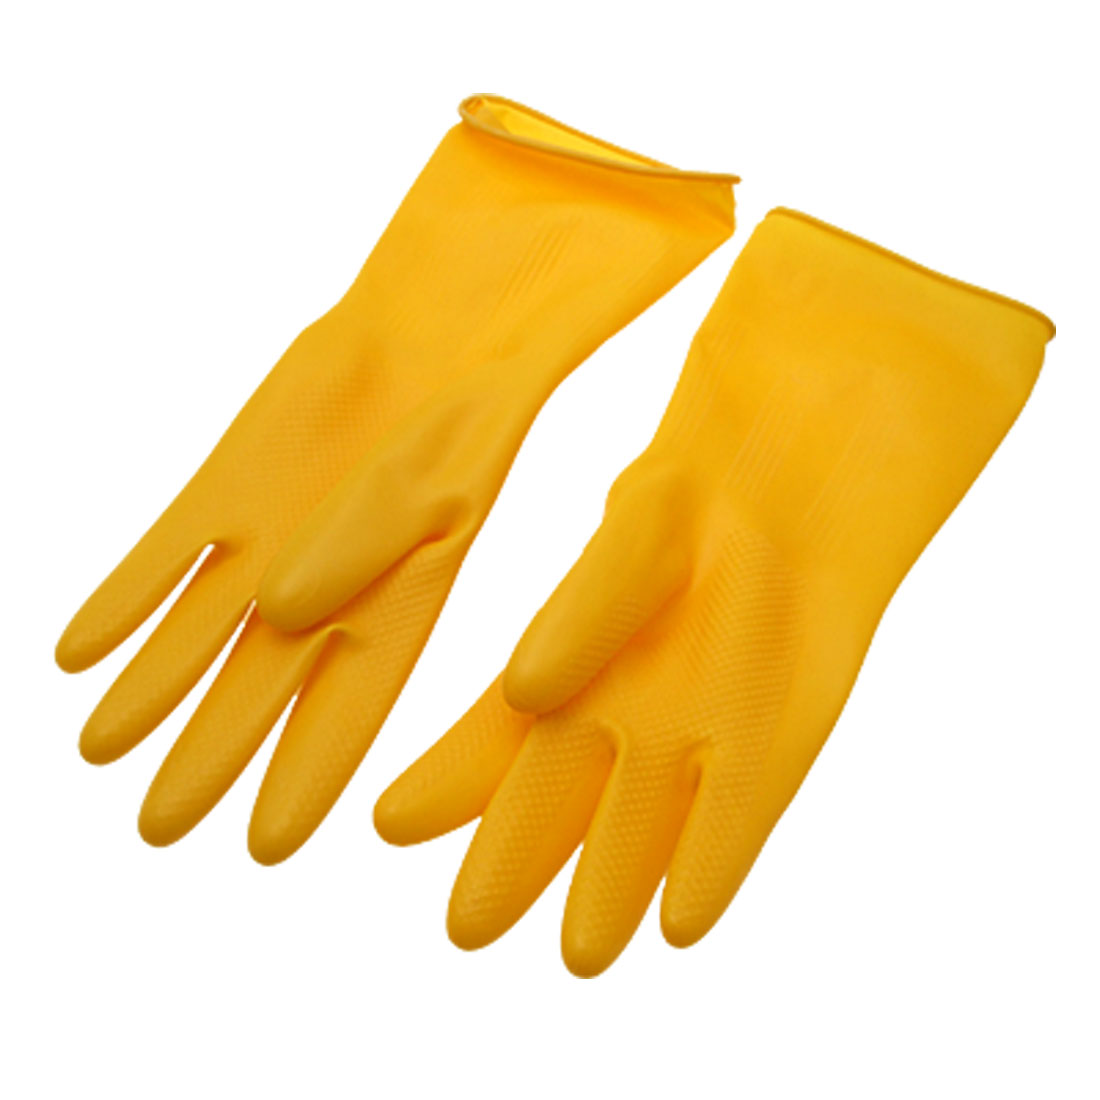 New Large Household Long Latex Rubber Gloves Yellow